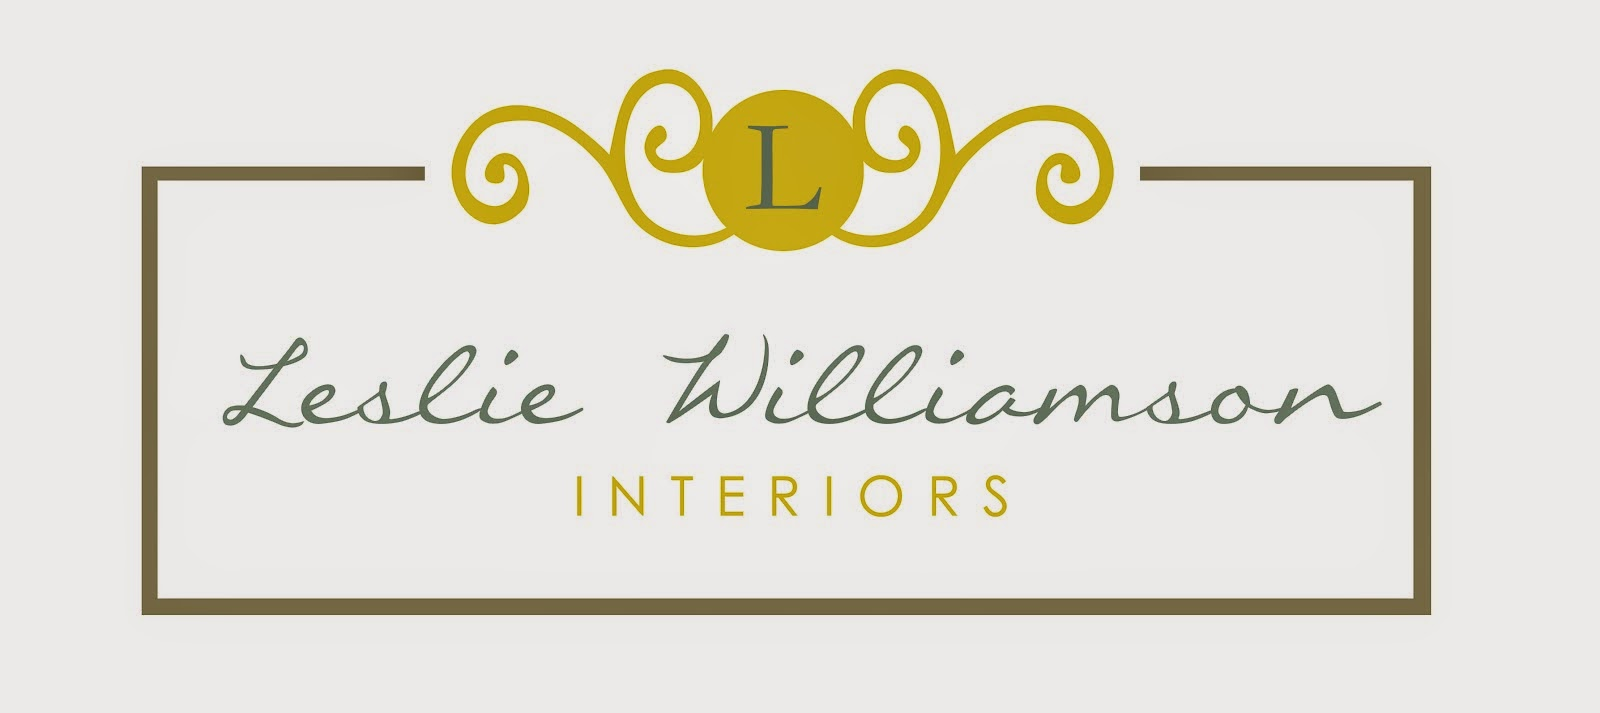 Interior Design Logos • Samples For Interior Design ...